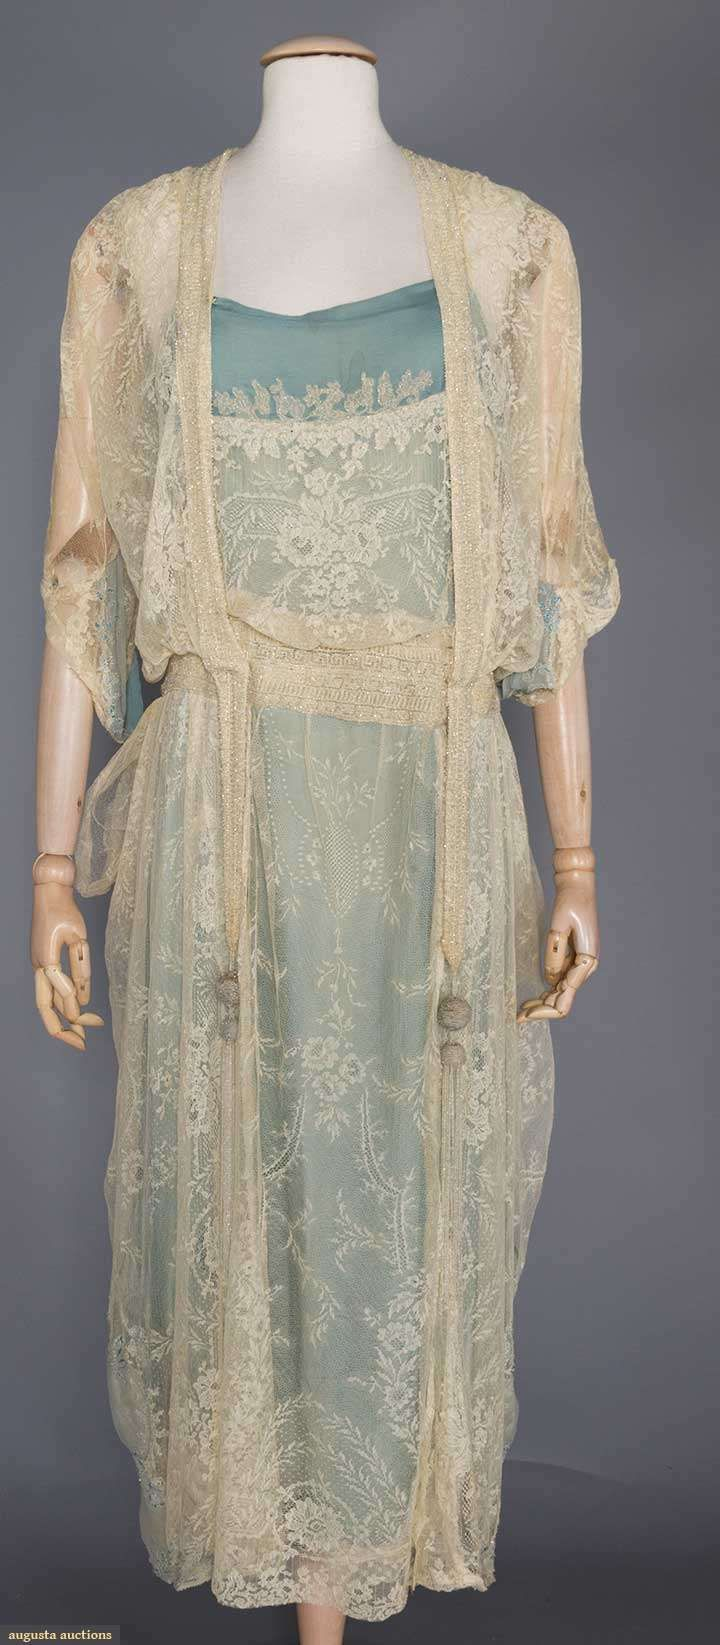 Evening Dress (image 1) | 1915 | lace | Augusta Auctions | November 16, 2016